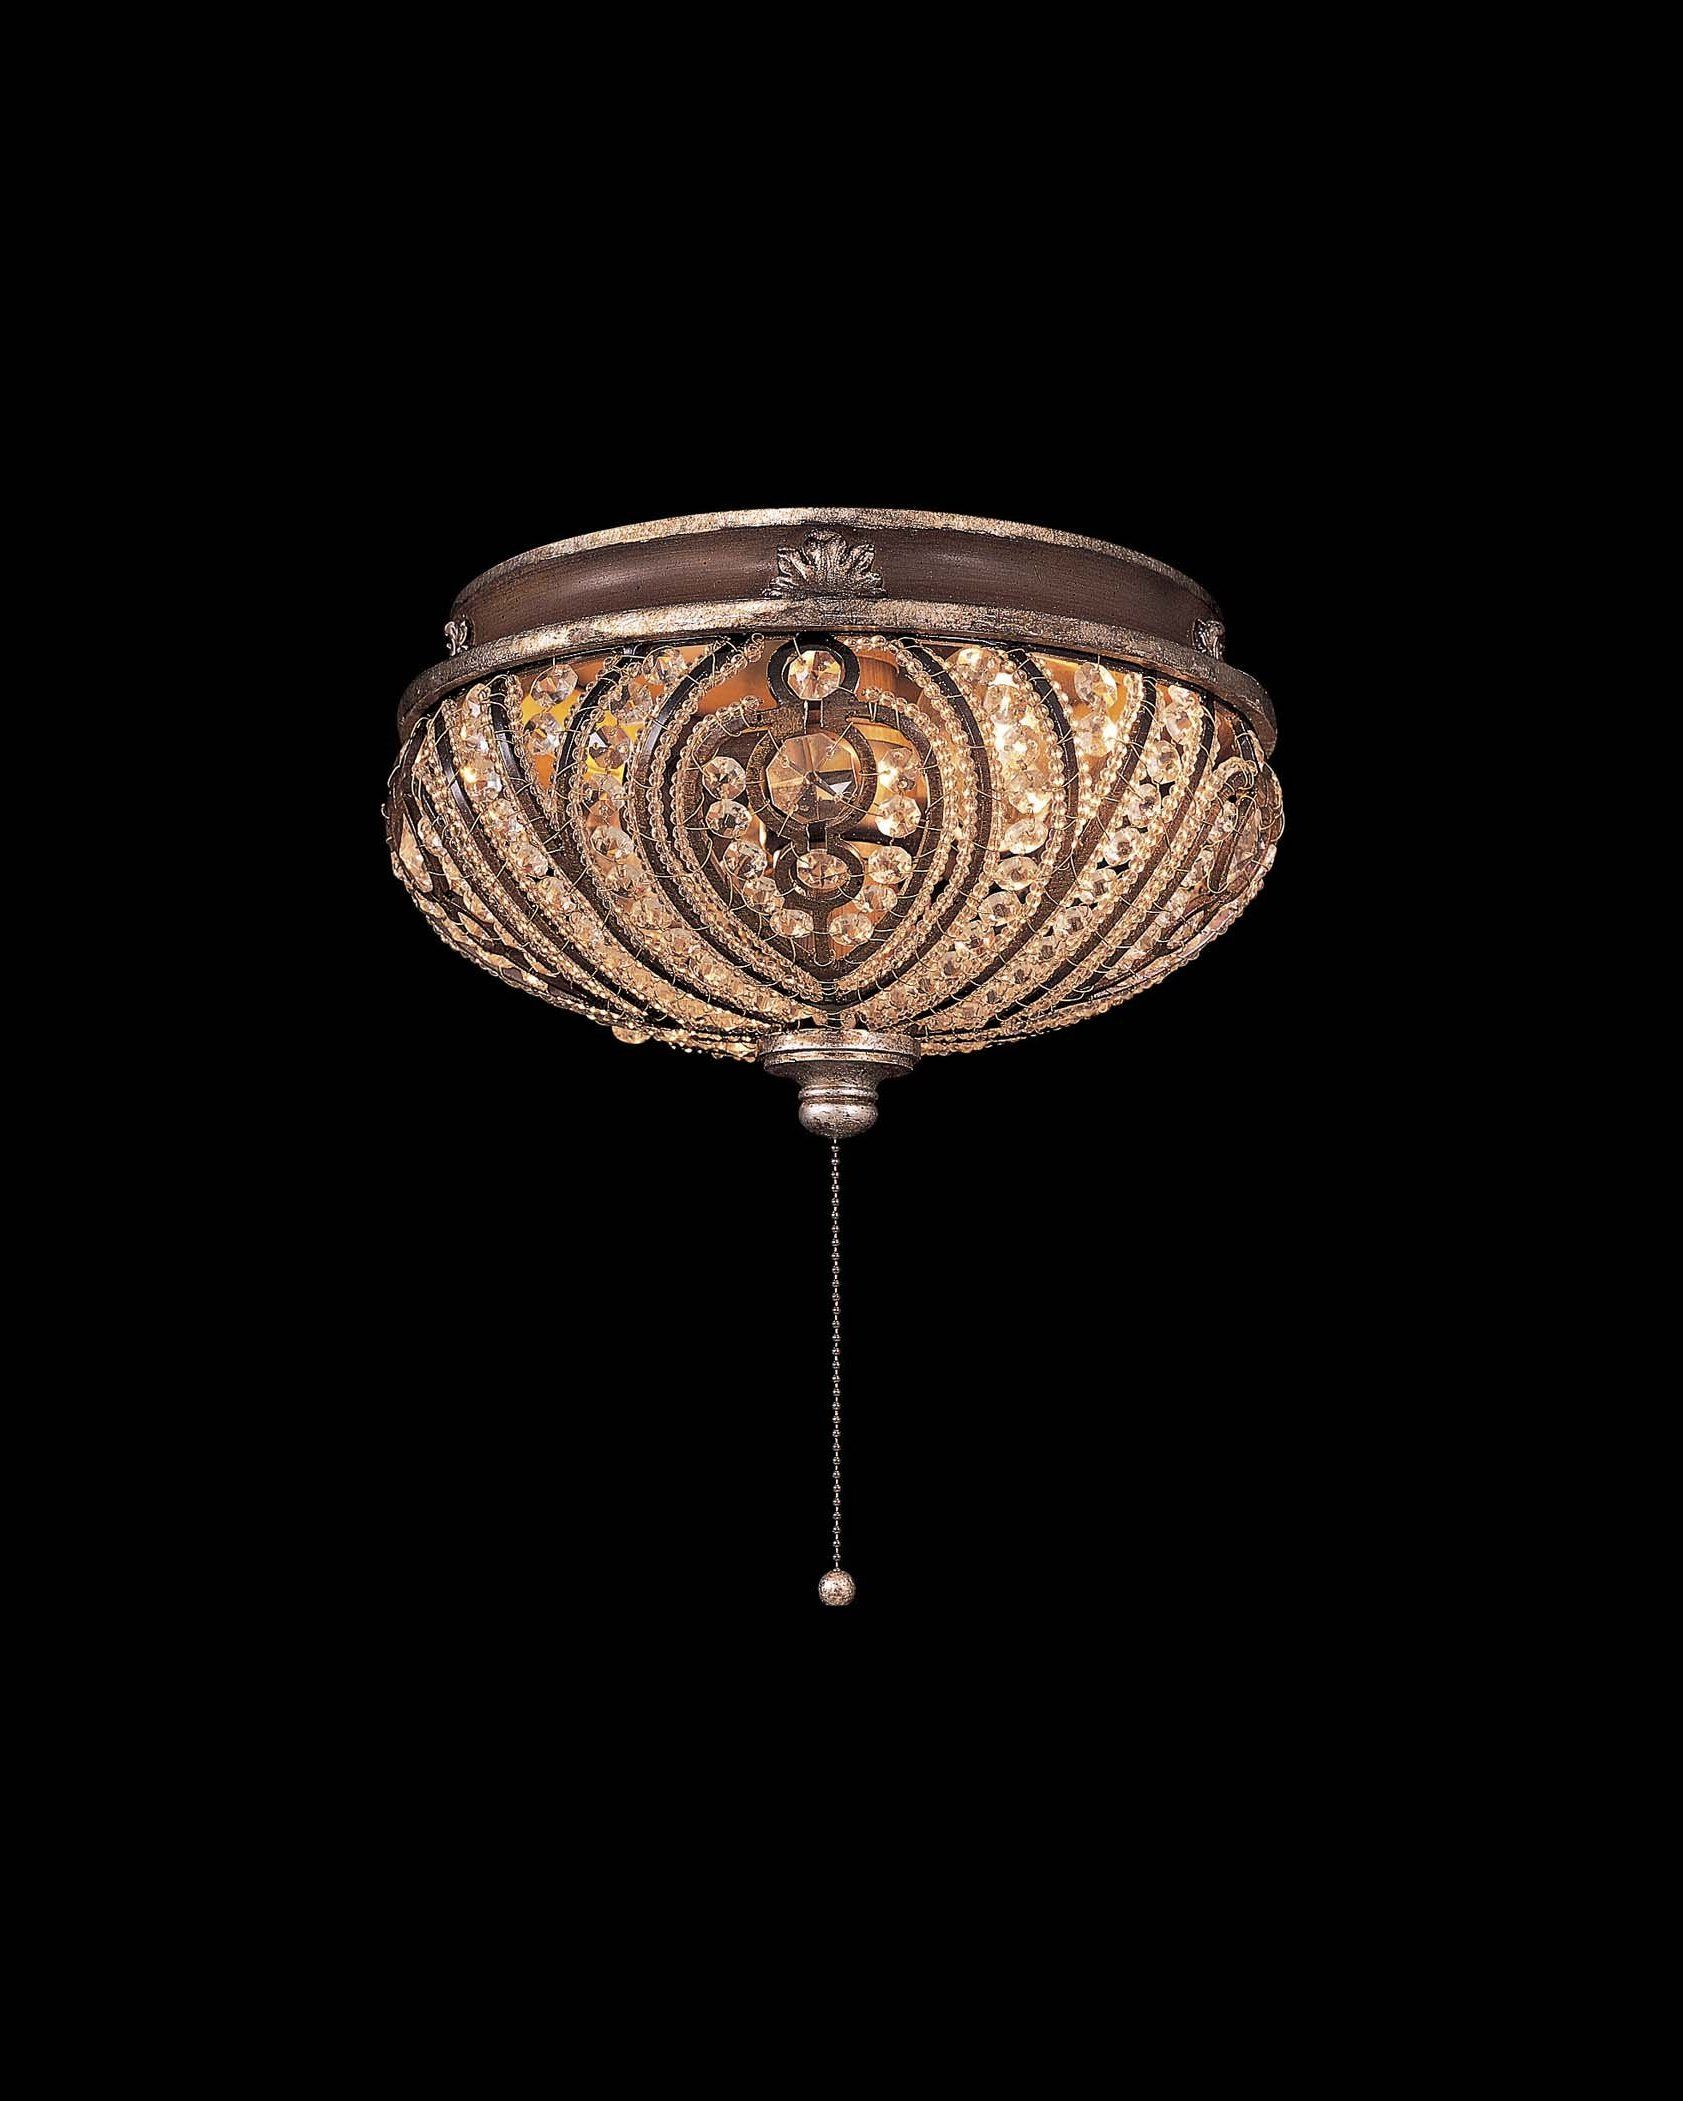 Portrayal of pull chain ceiling light fixture for interesting portrayal of pull chain ceiling light fixture for interesting illumination more aloadofball Image collections